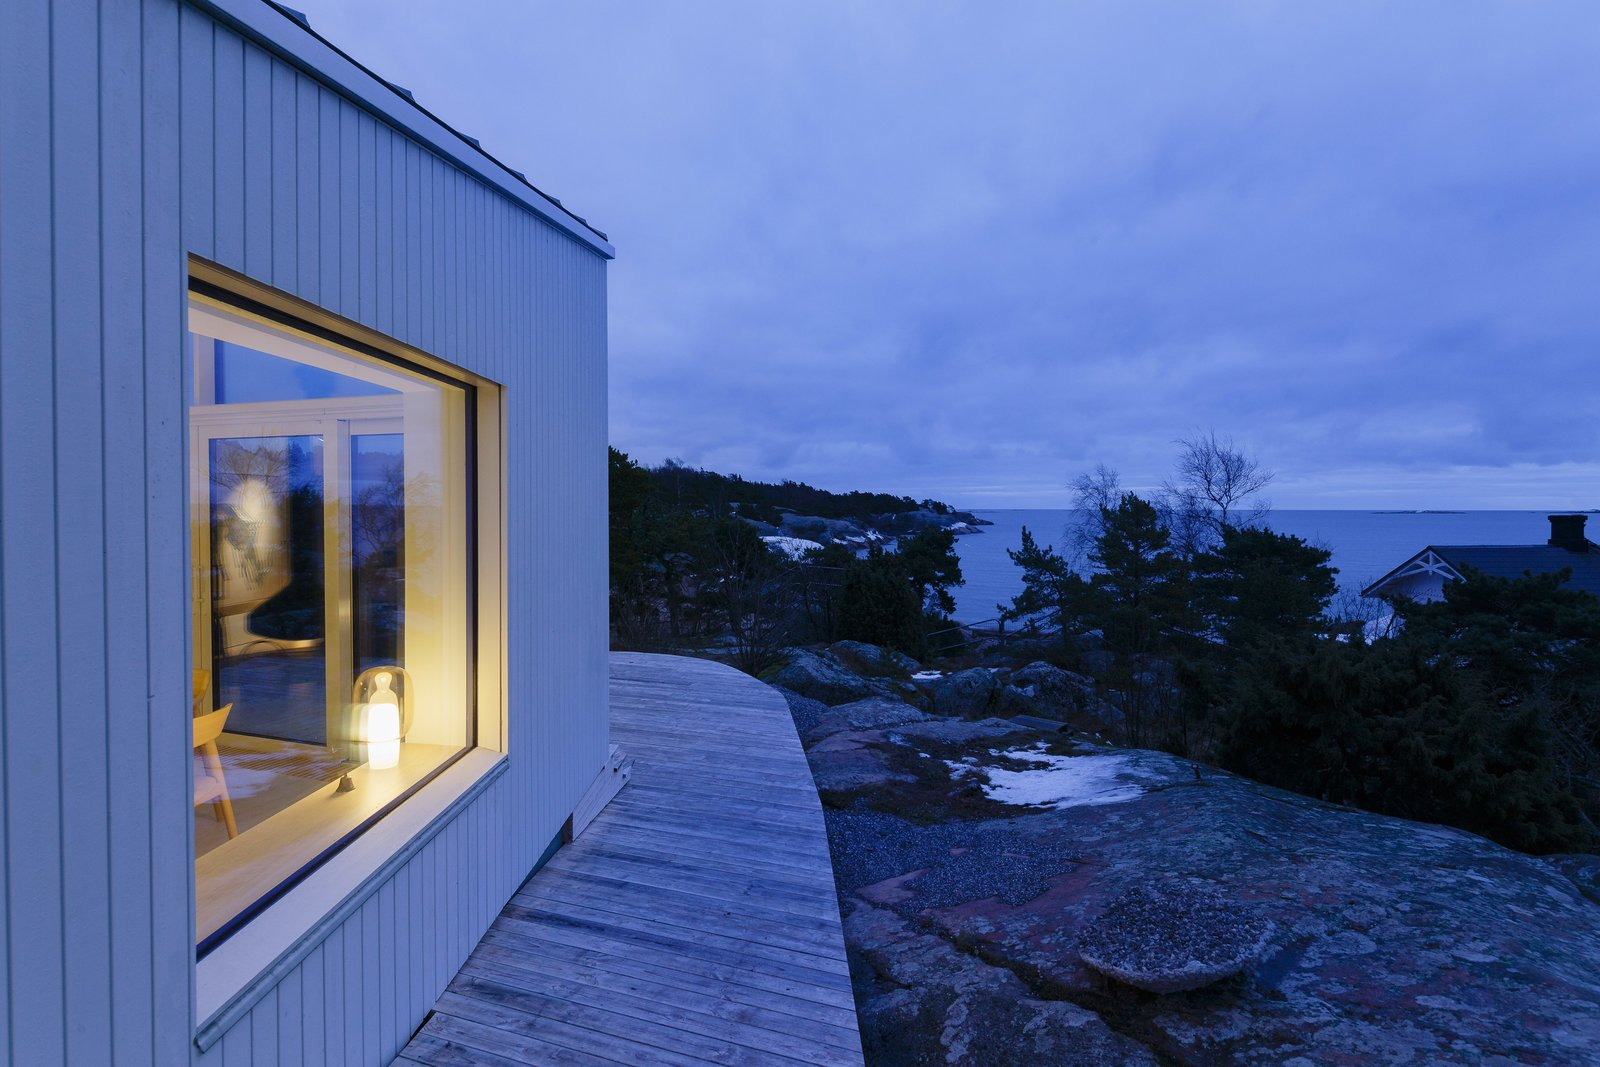 Outdoor  Photo 3 of 12 in A Modern Finnish Villa That Grows Out of a Seaside Cliff